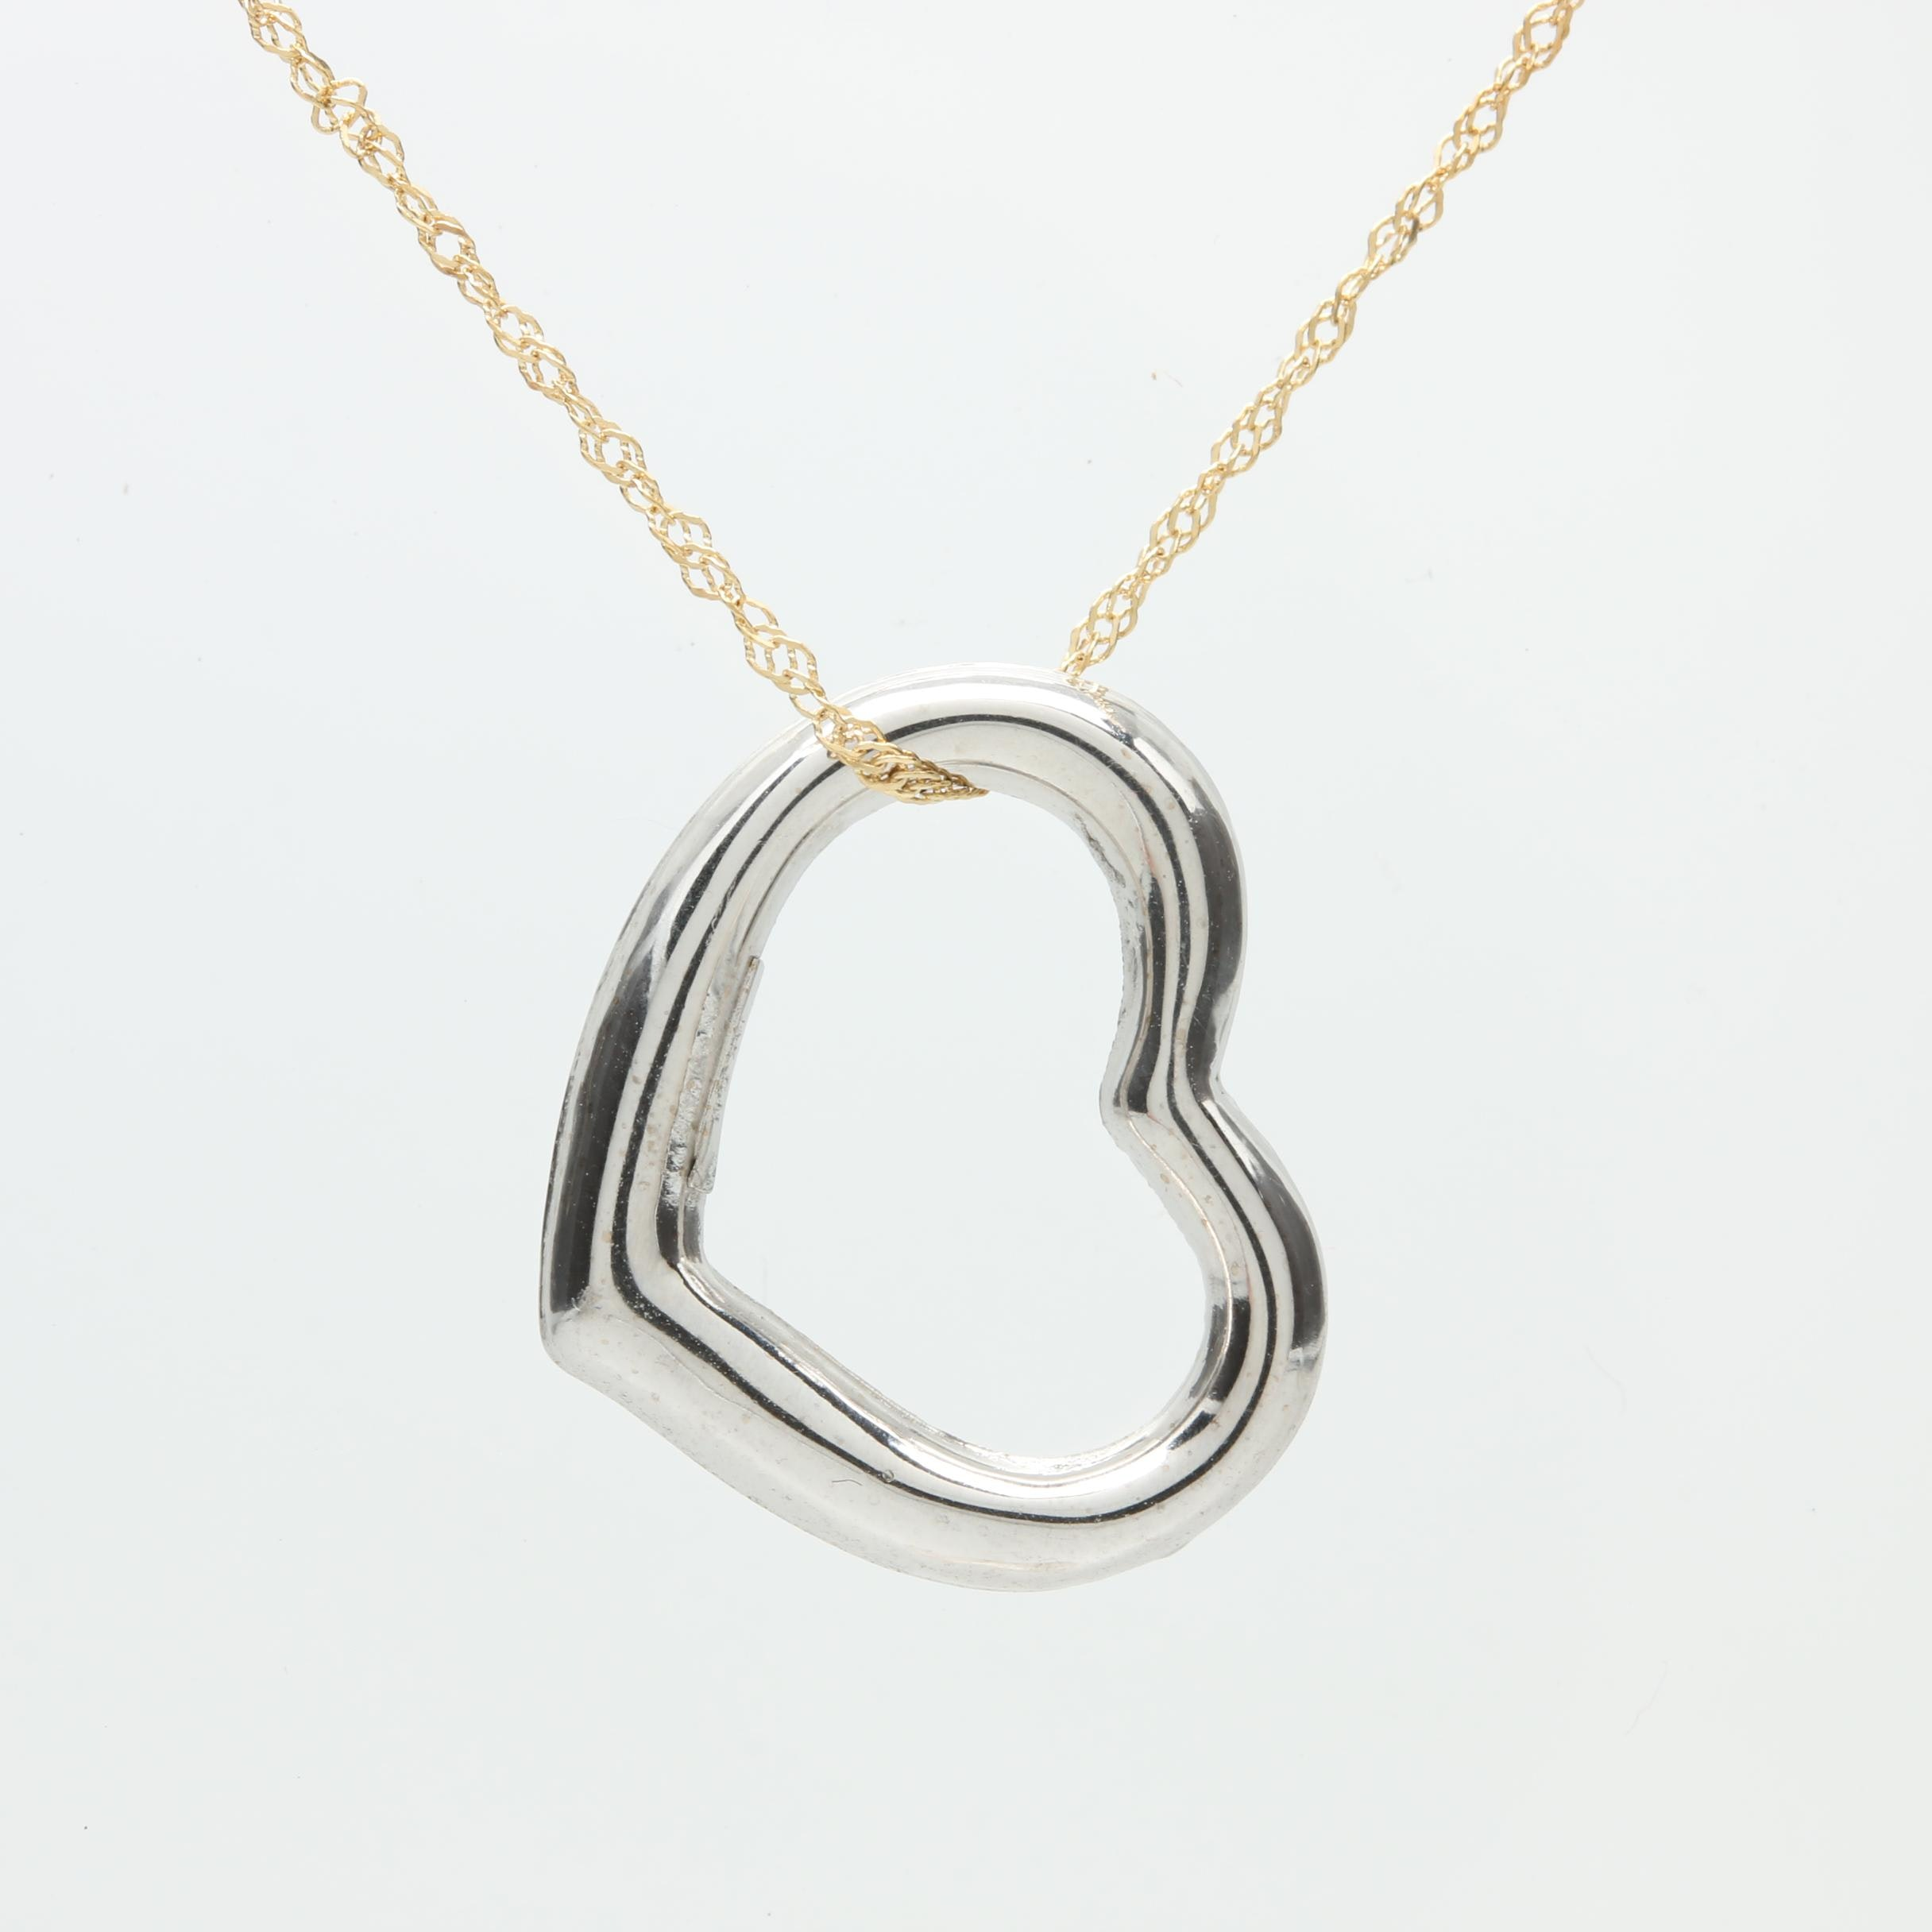 14K White Gold Heart Pendant on 14K Yellow Gold Chain